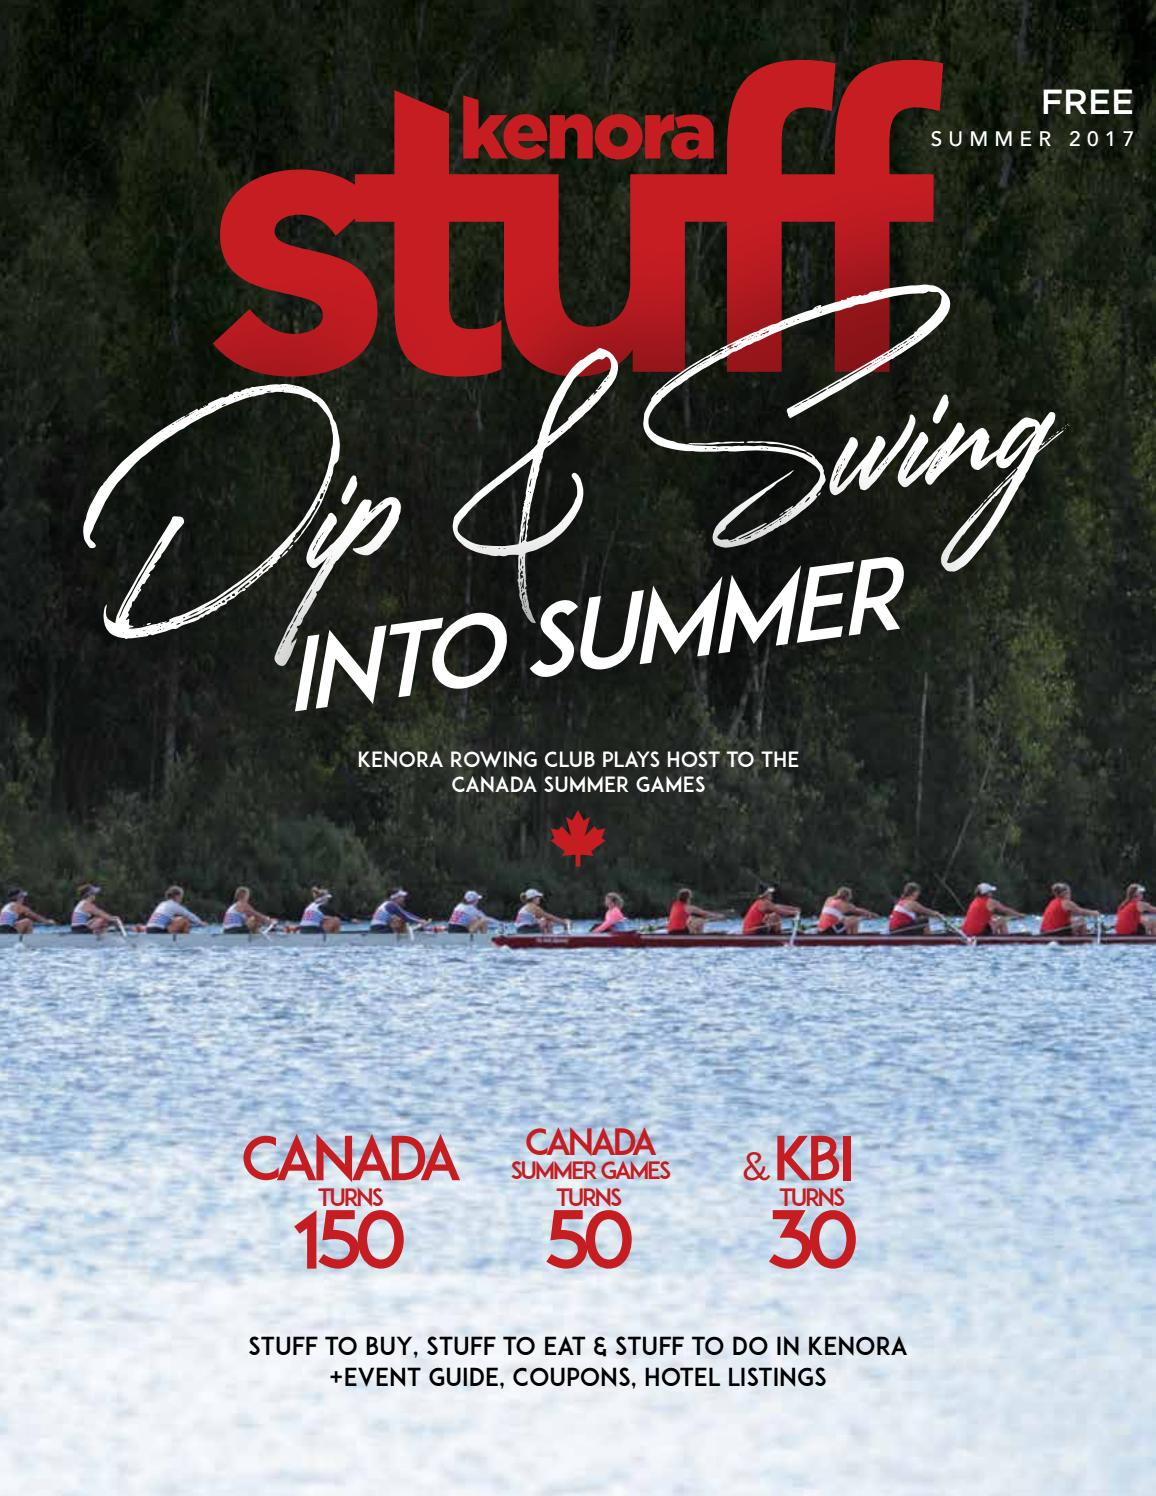 Kenora Stuff Summer 2017 by Mike Greaves   issuu 1156x1496